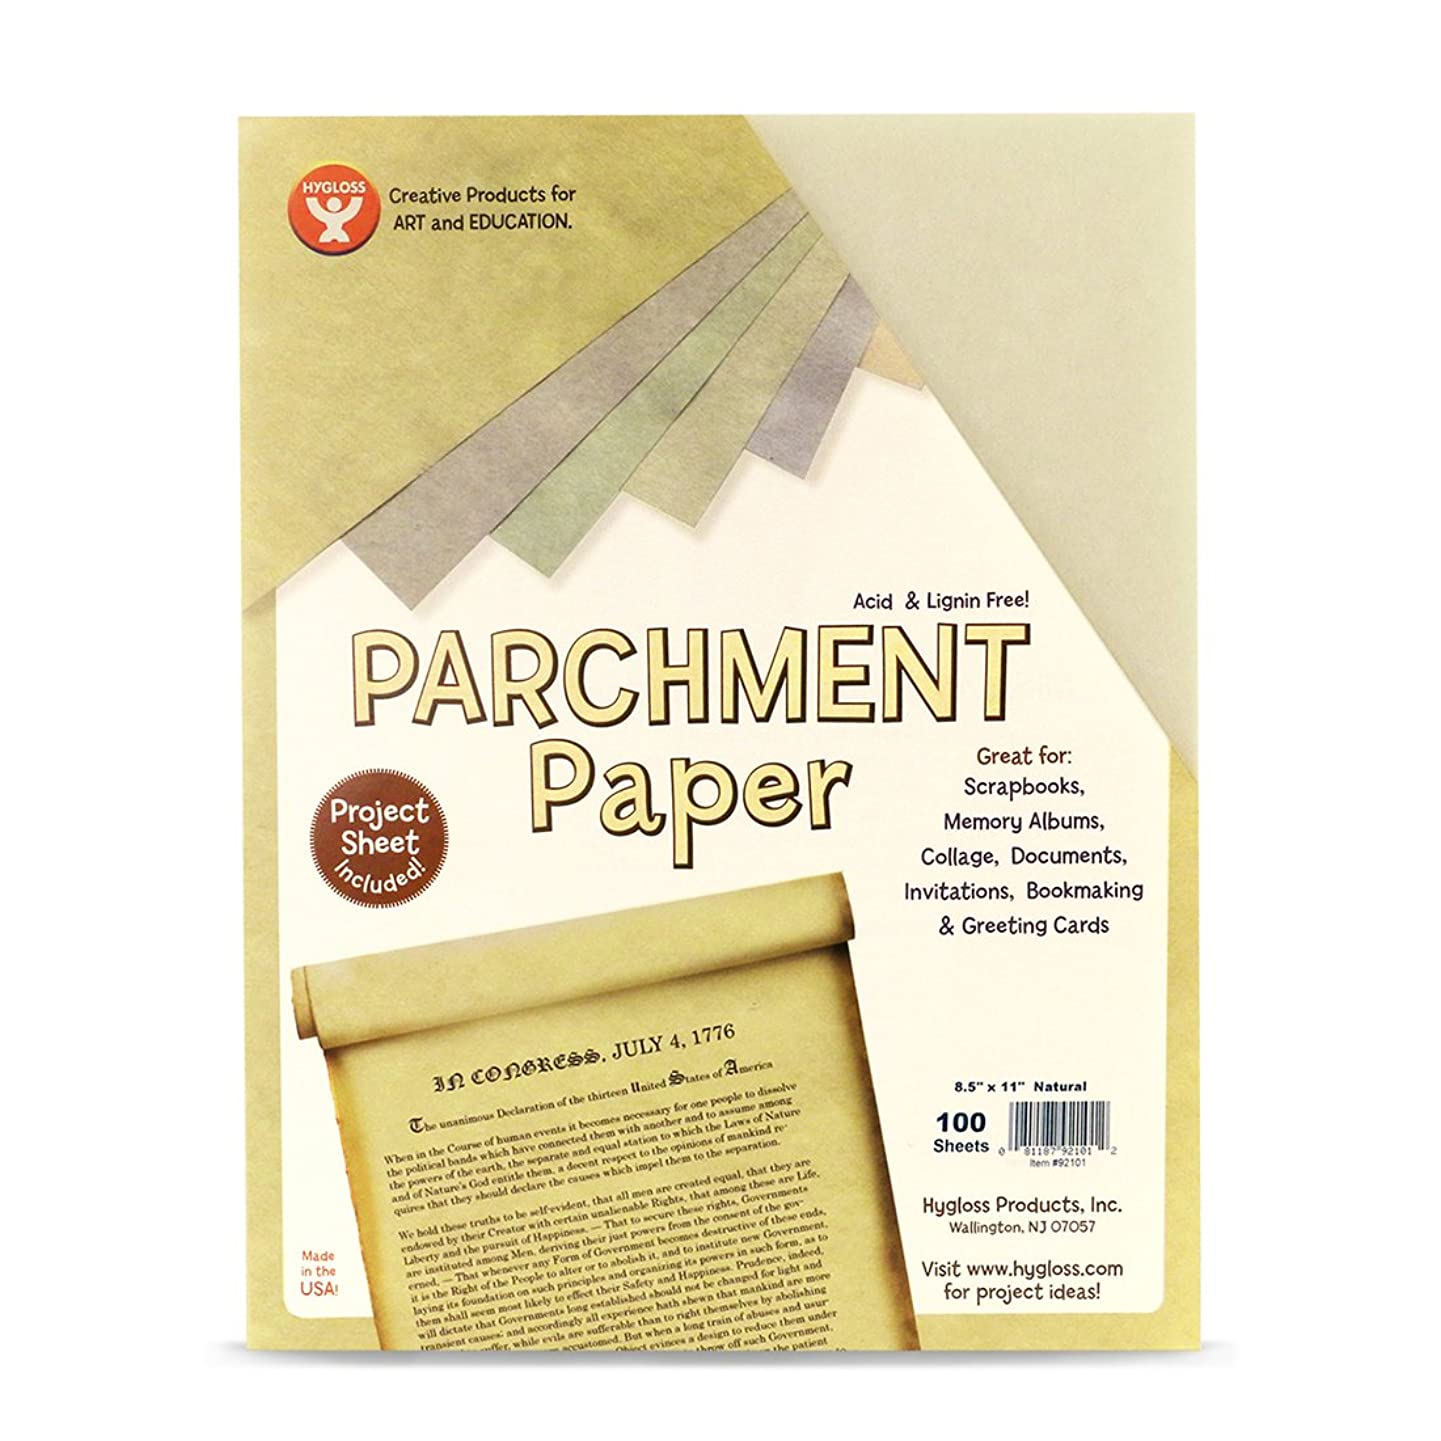 Hygloss Products Craft Parchment Paper Sheets - Printer Friendly, Made in USA - 8-1/2 x 11 Inches, Natural, 100 Pack